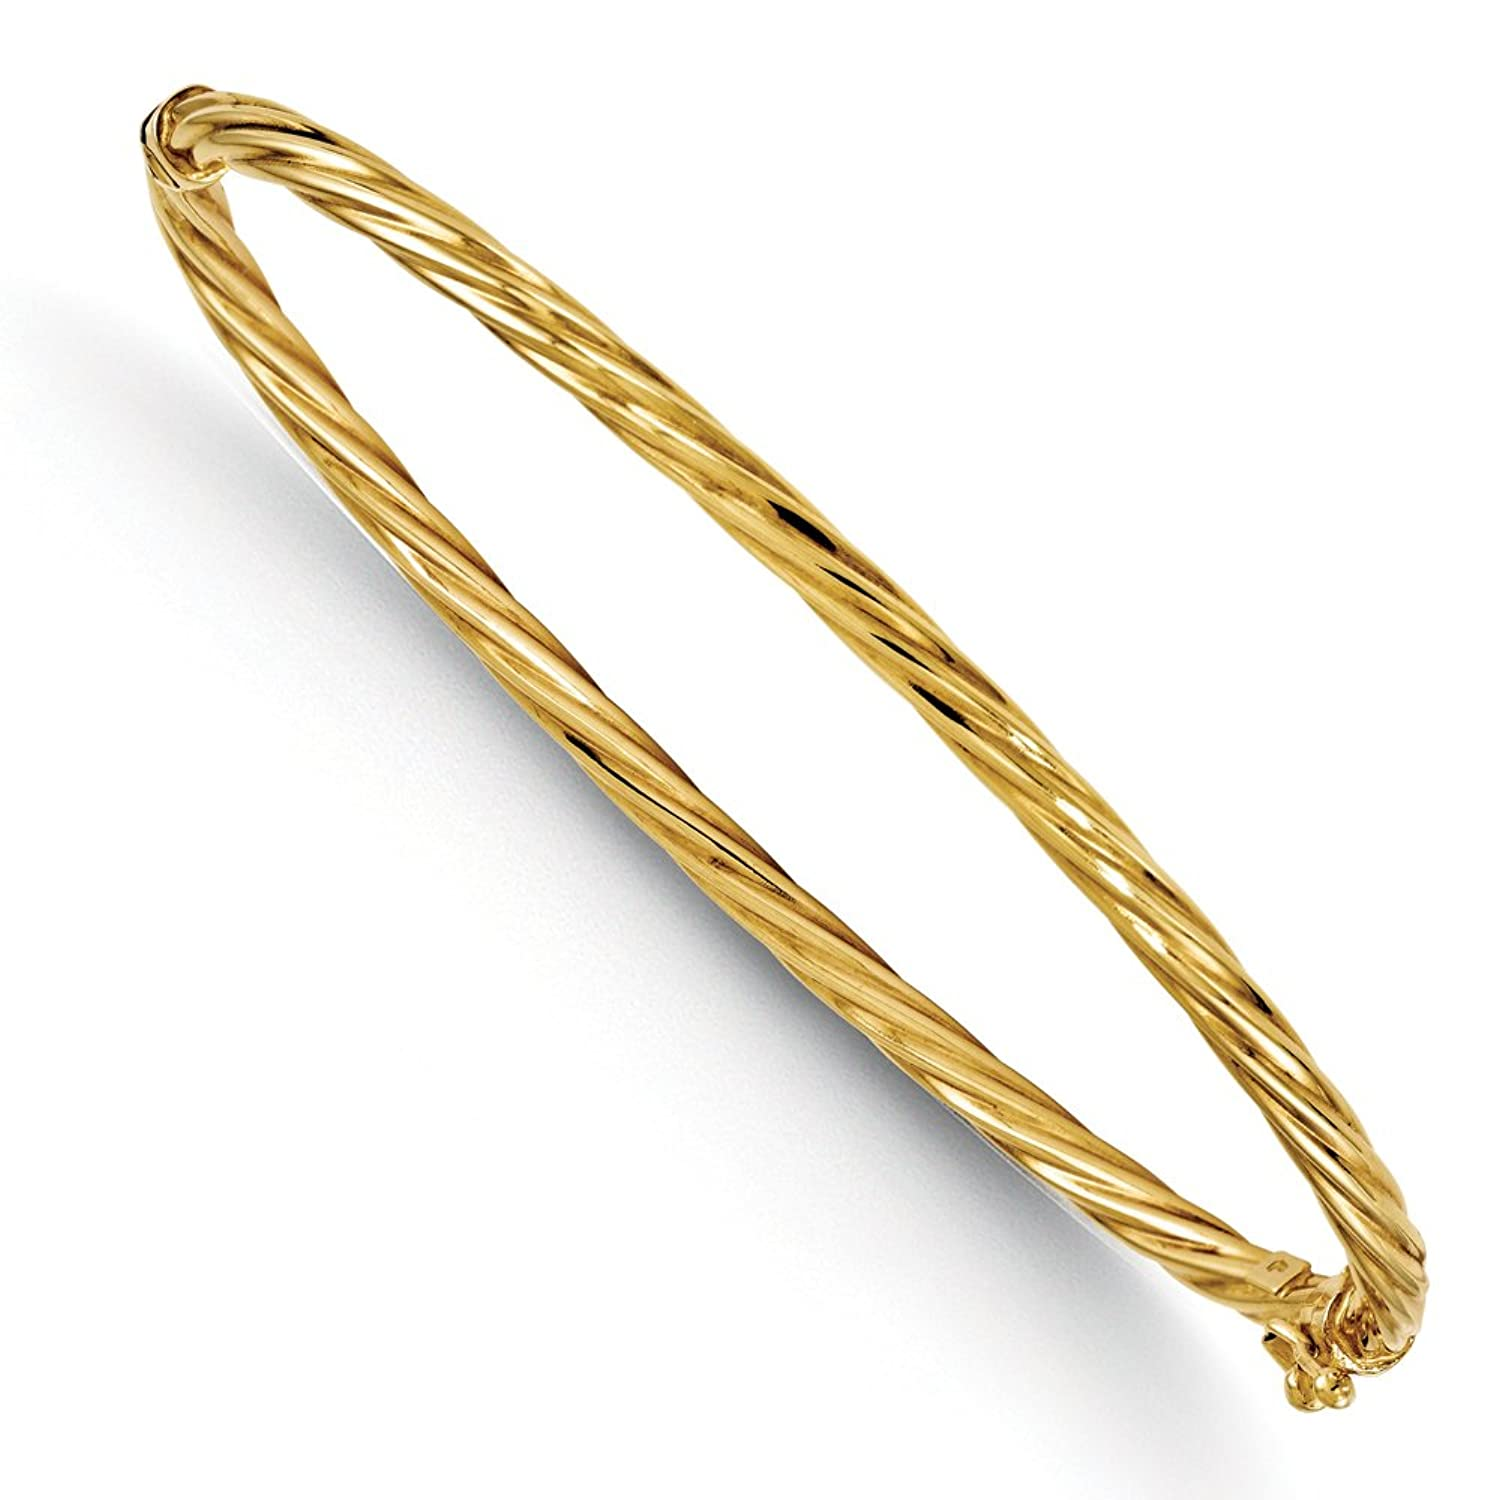 bangles tanishq for caymancode bracelet gold bracelets women designs bangle